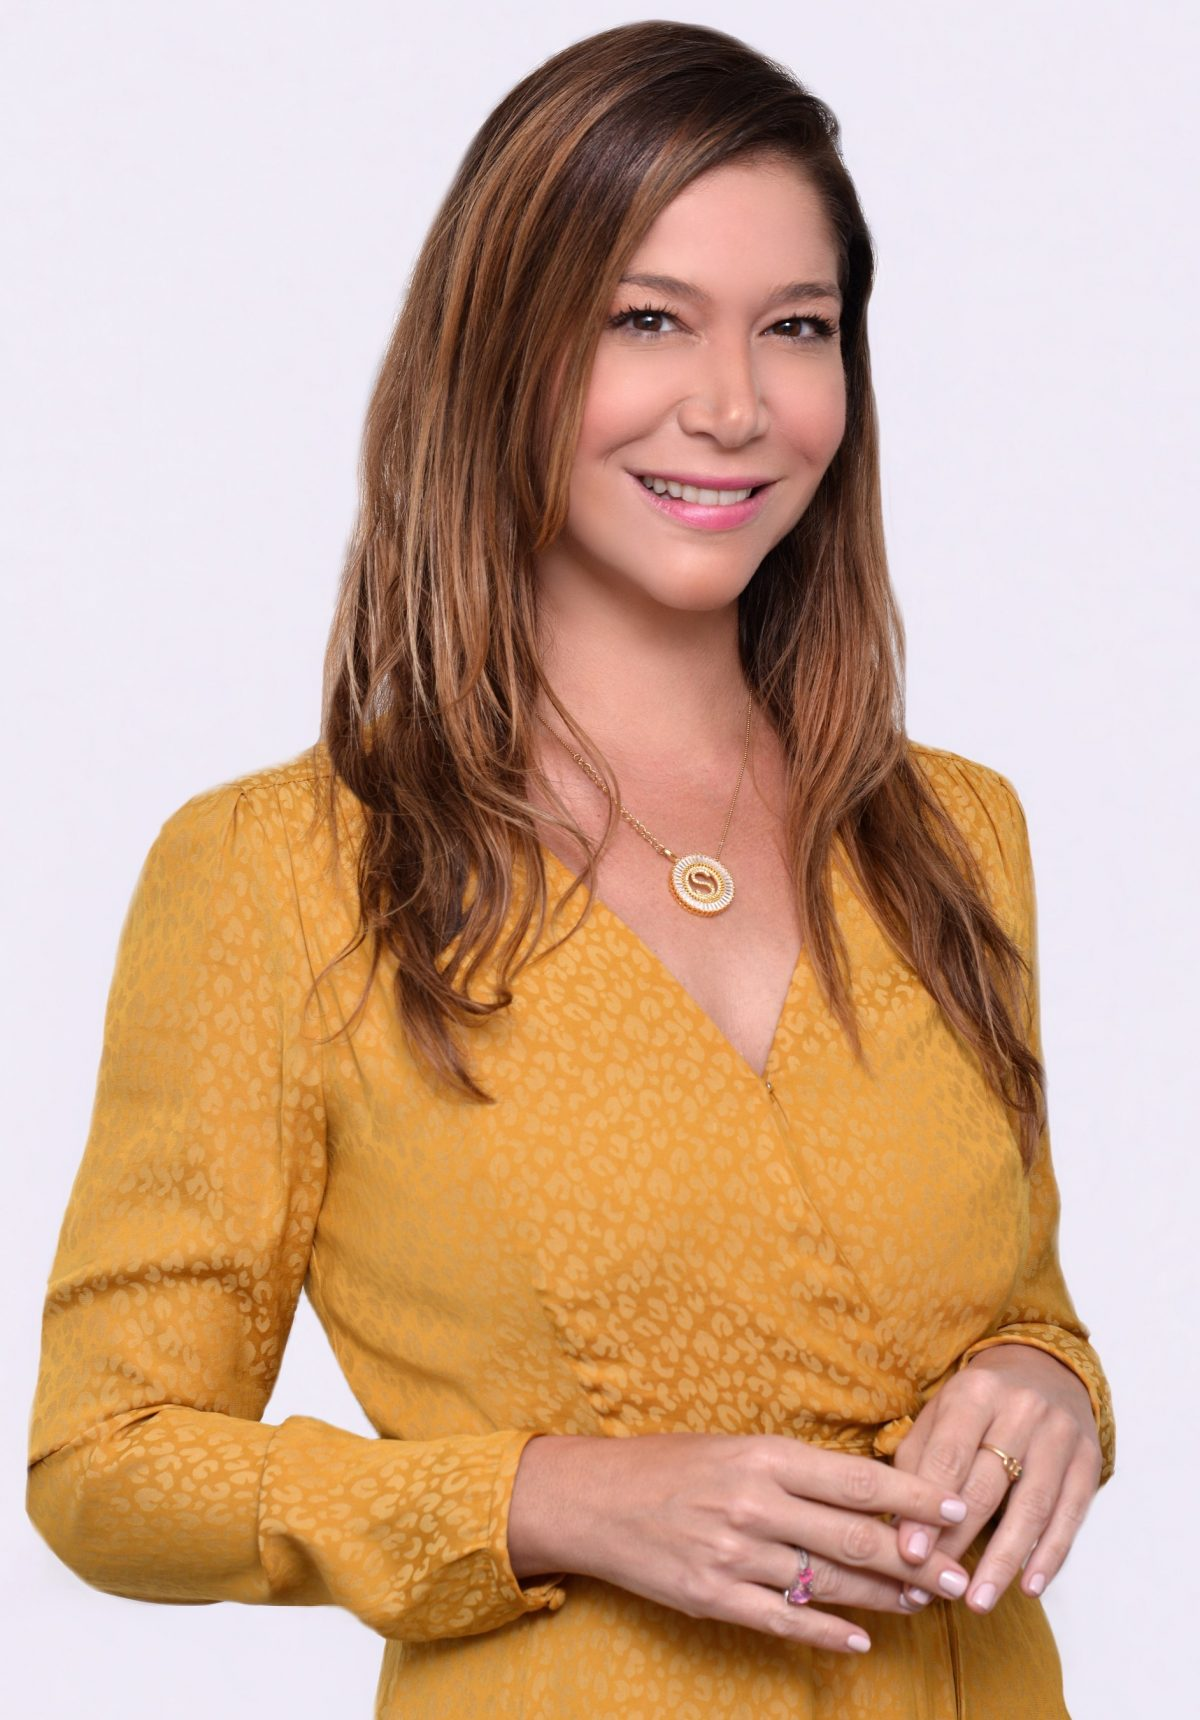 Journalist Sabina Covo joins MegaTV